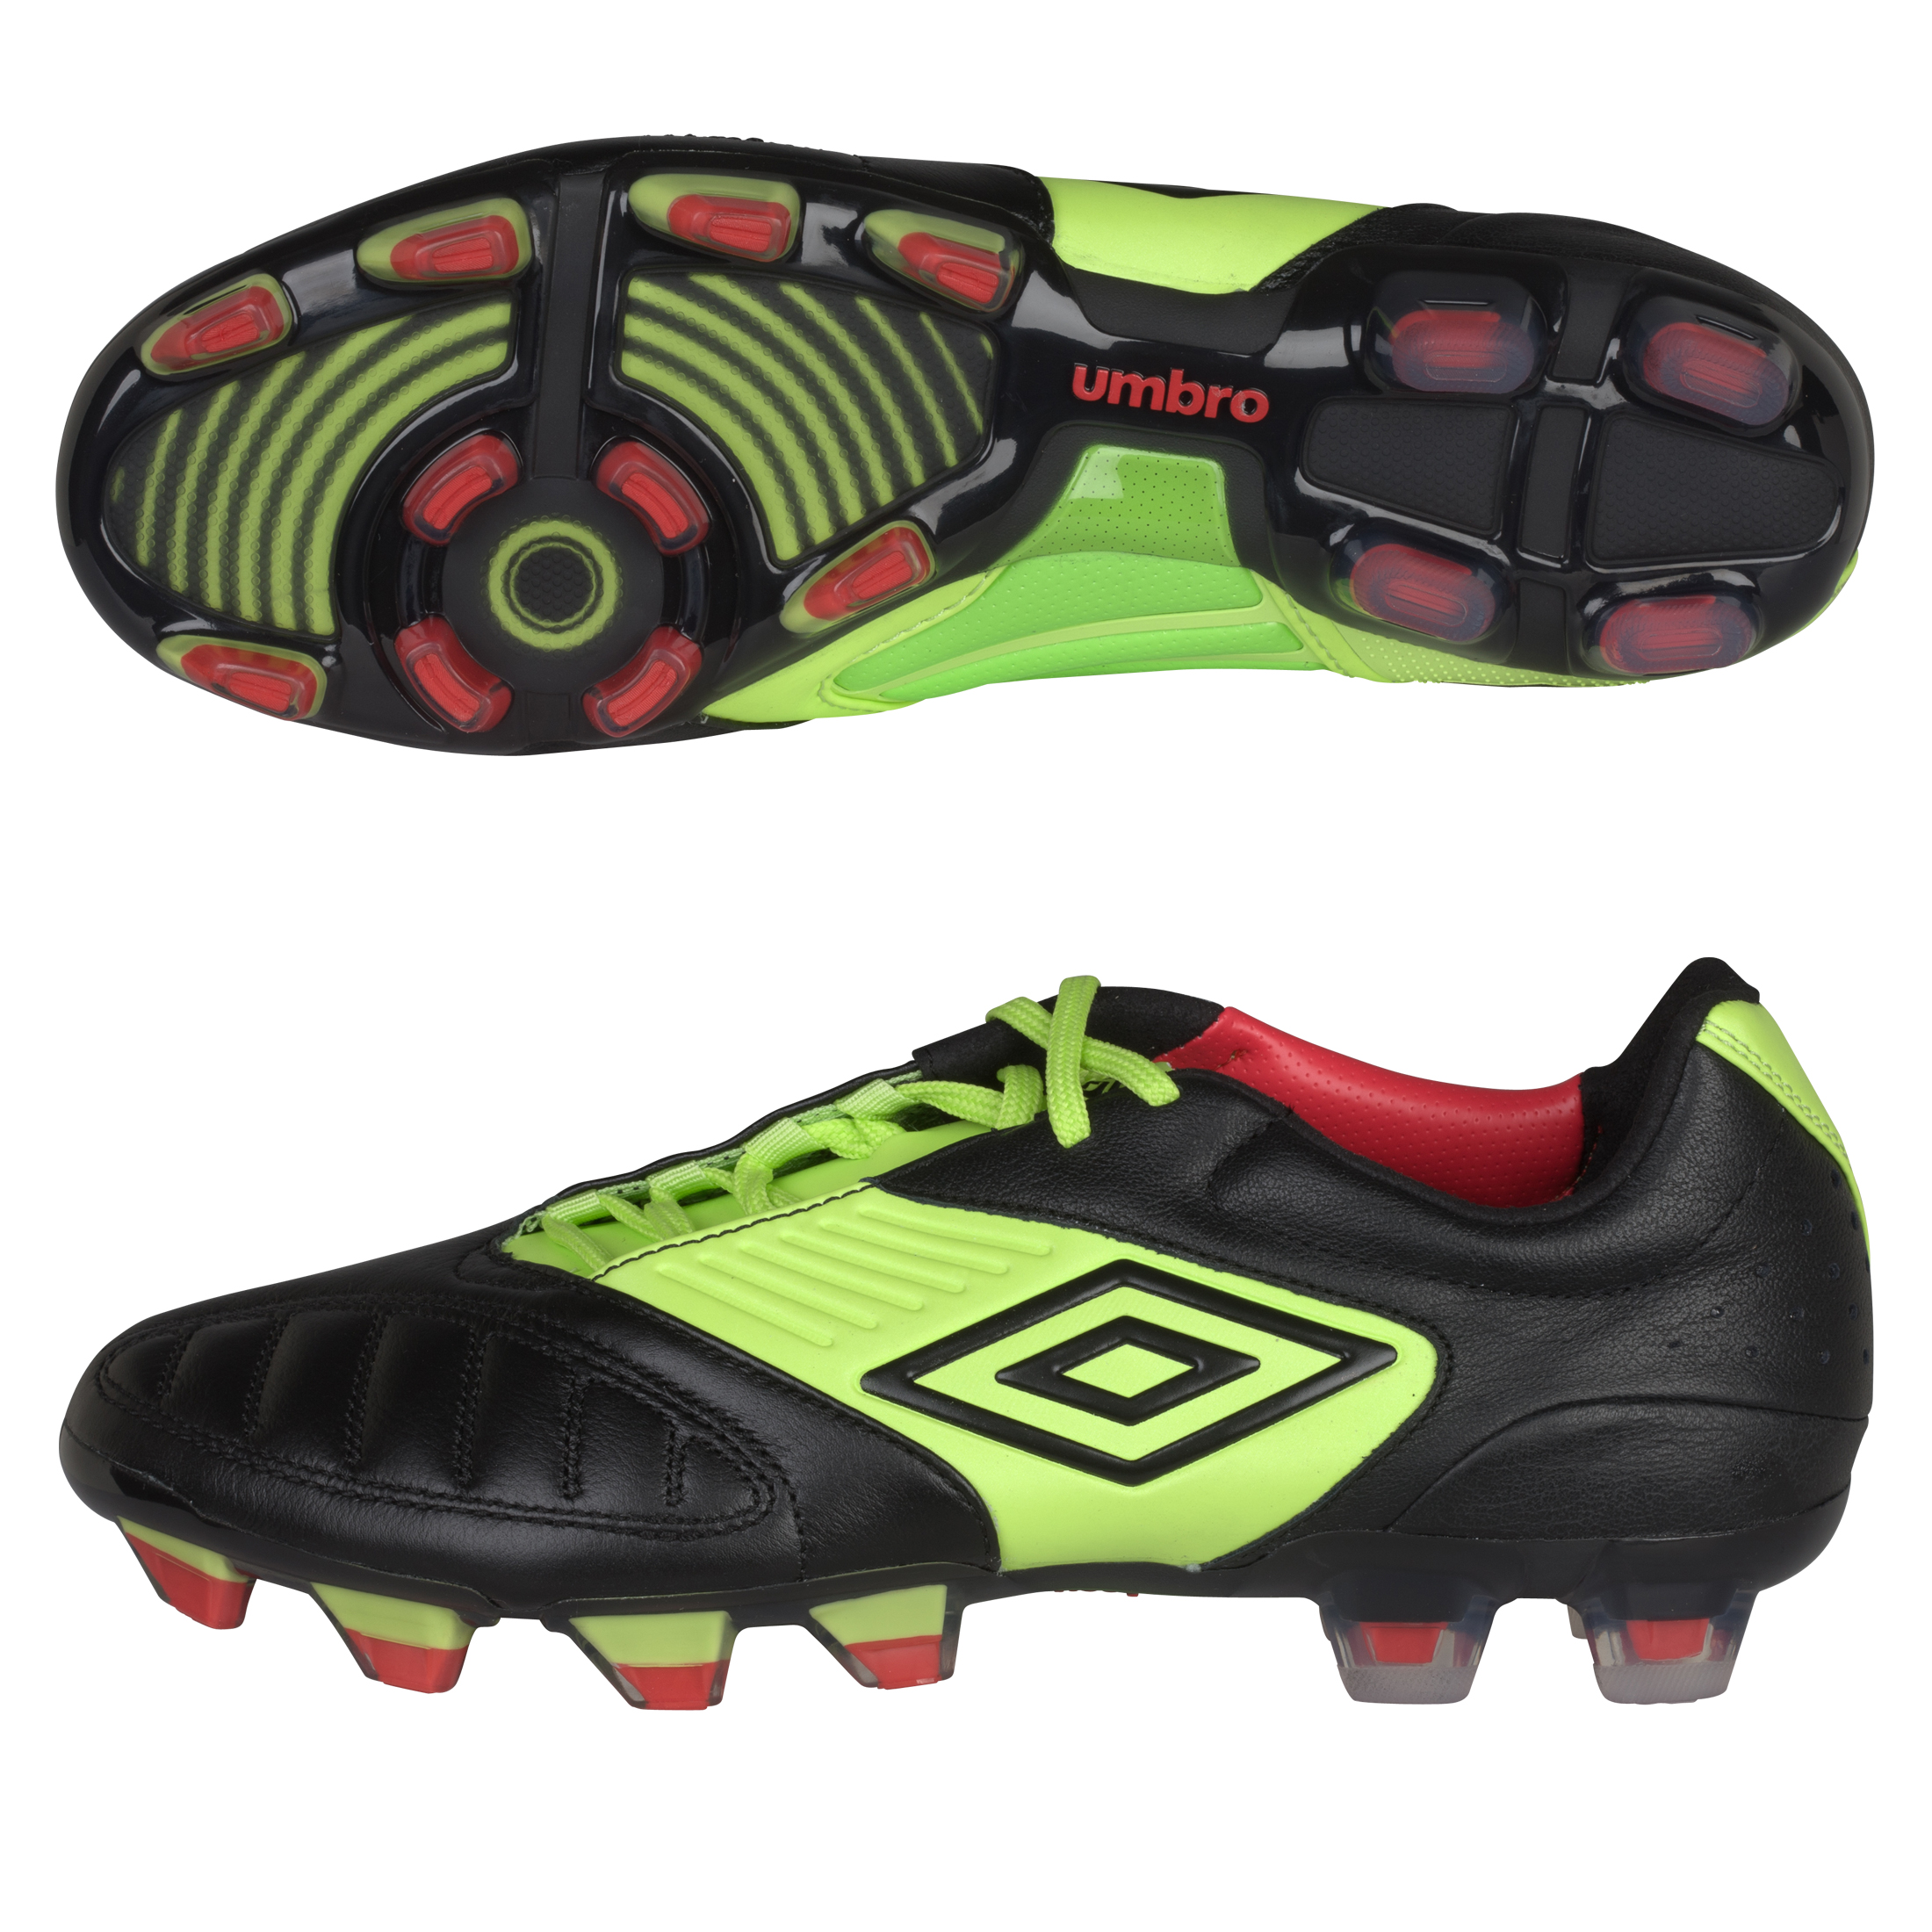 Geometra Pro FG Black/White/Sharp Green/True Red